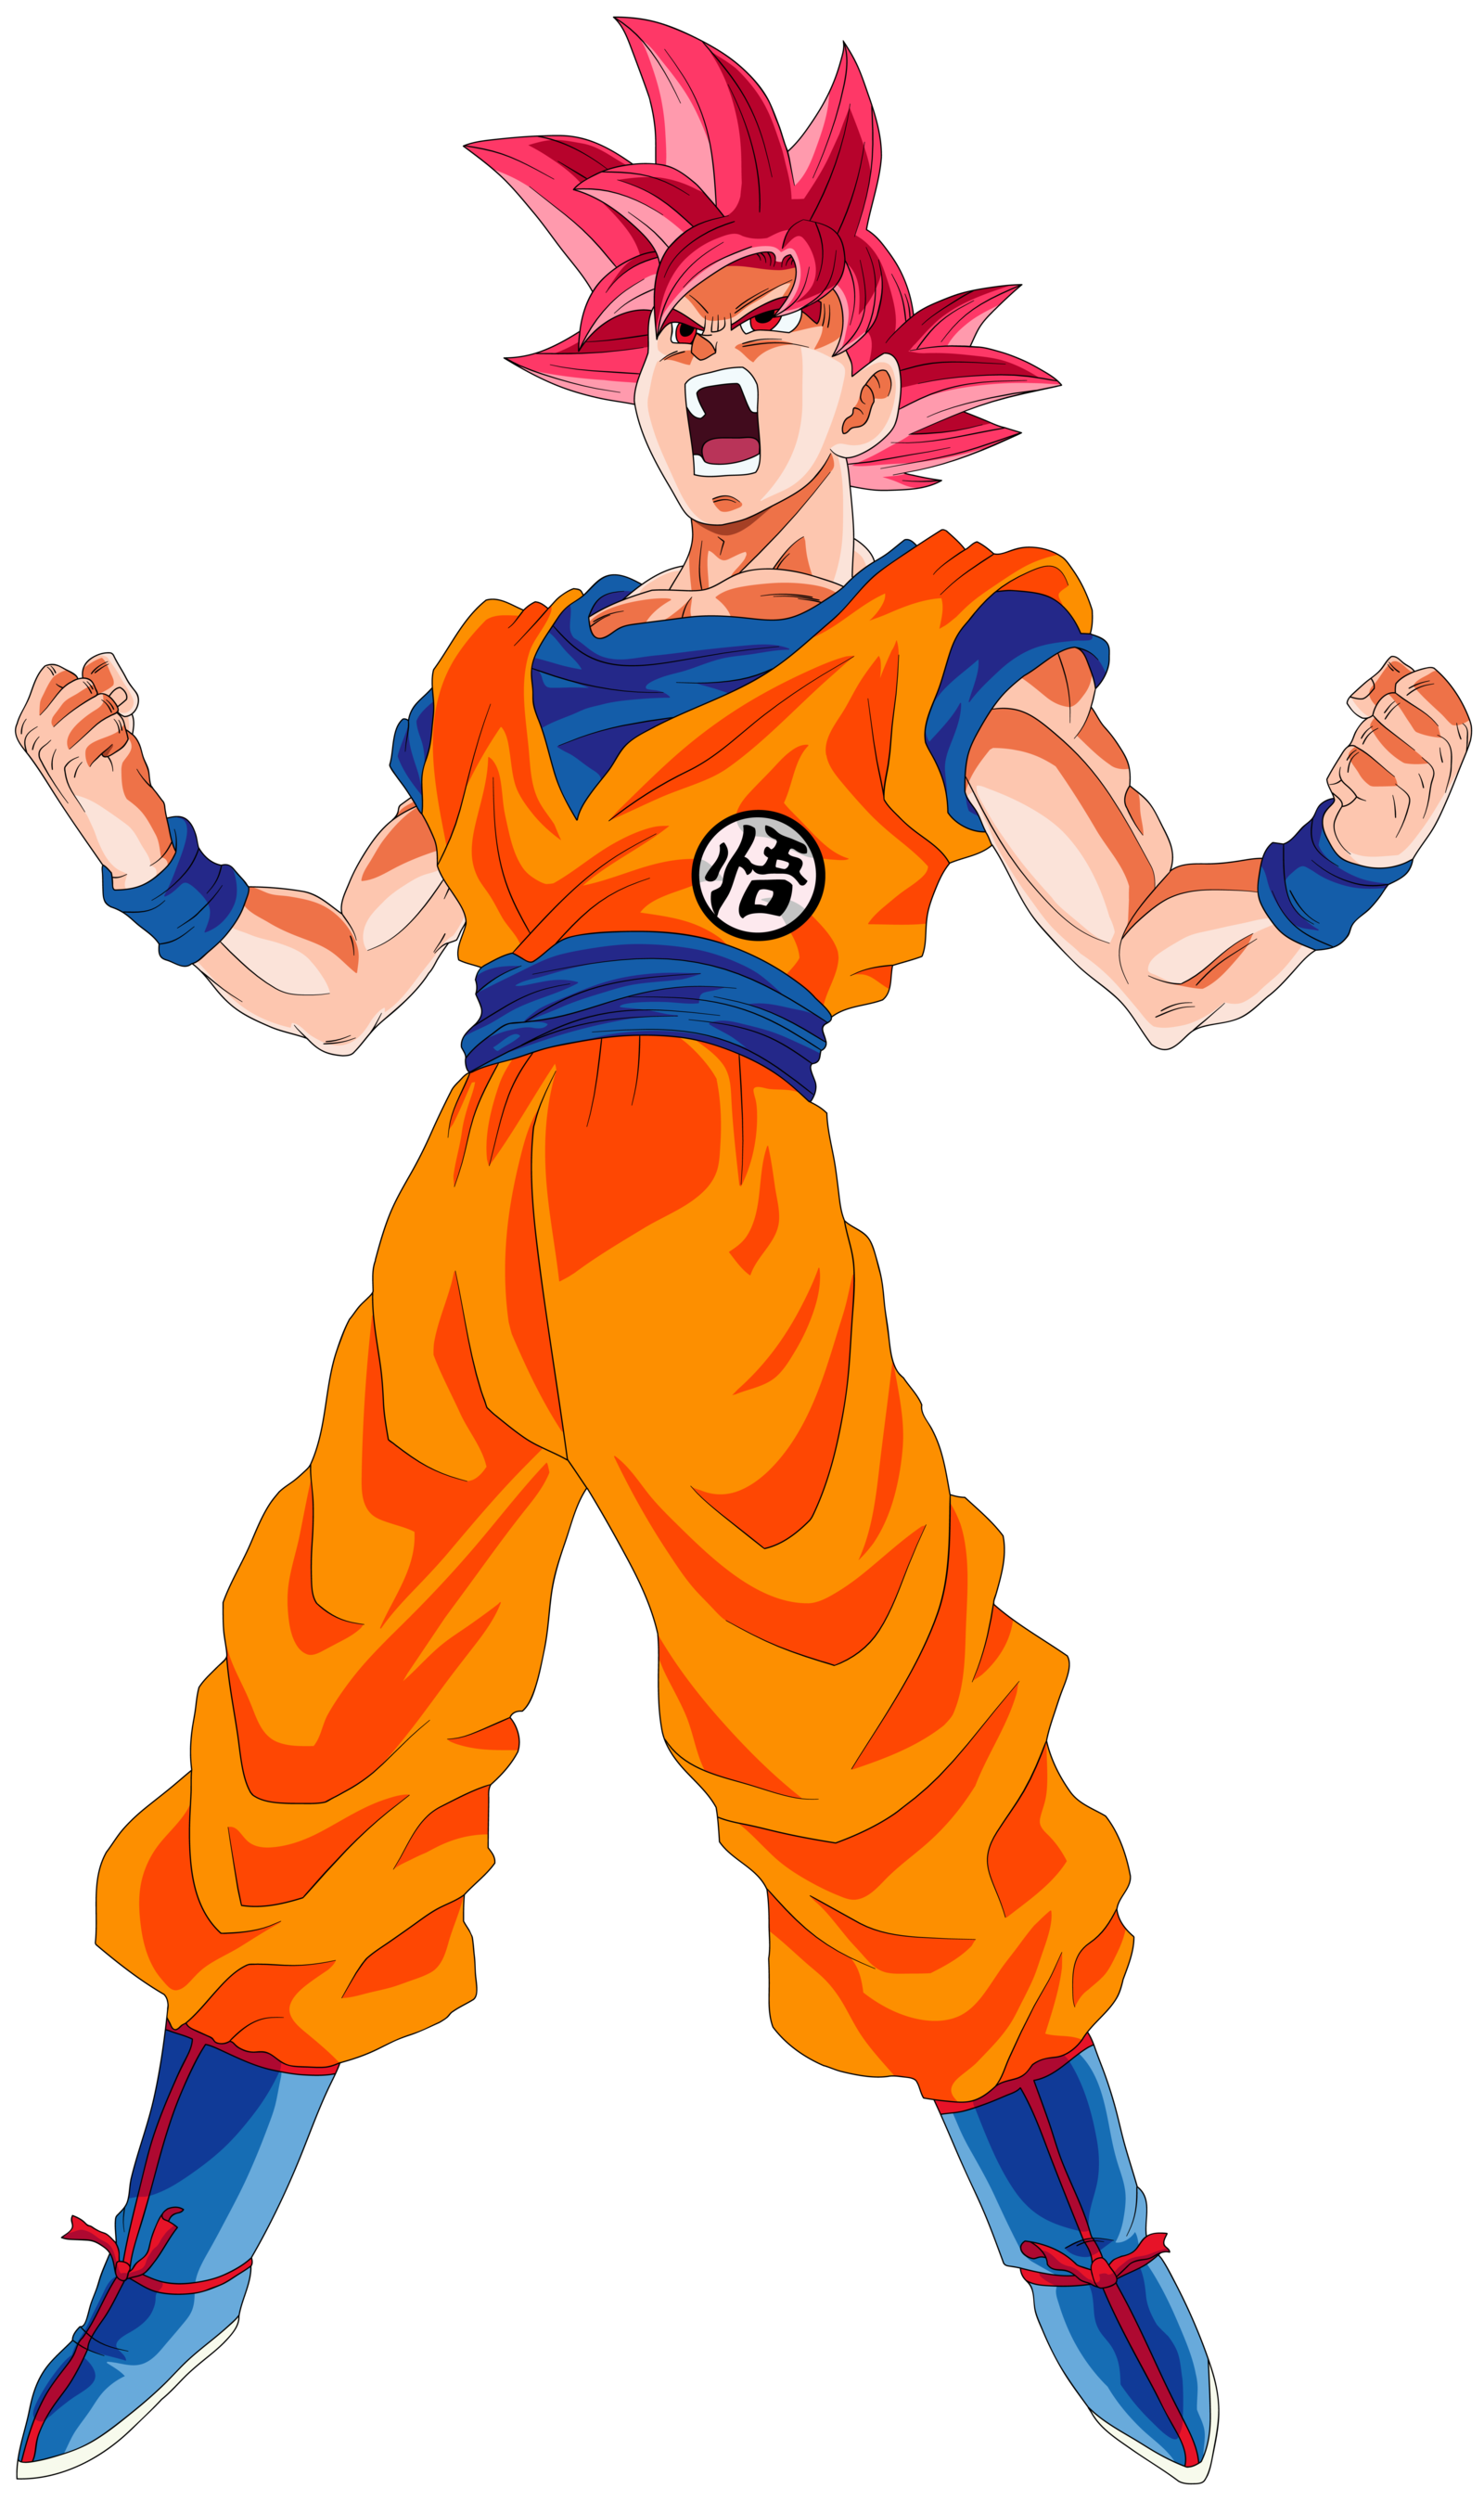 Super saiyan power up png. Image goku god palette